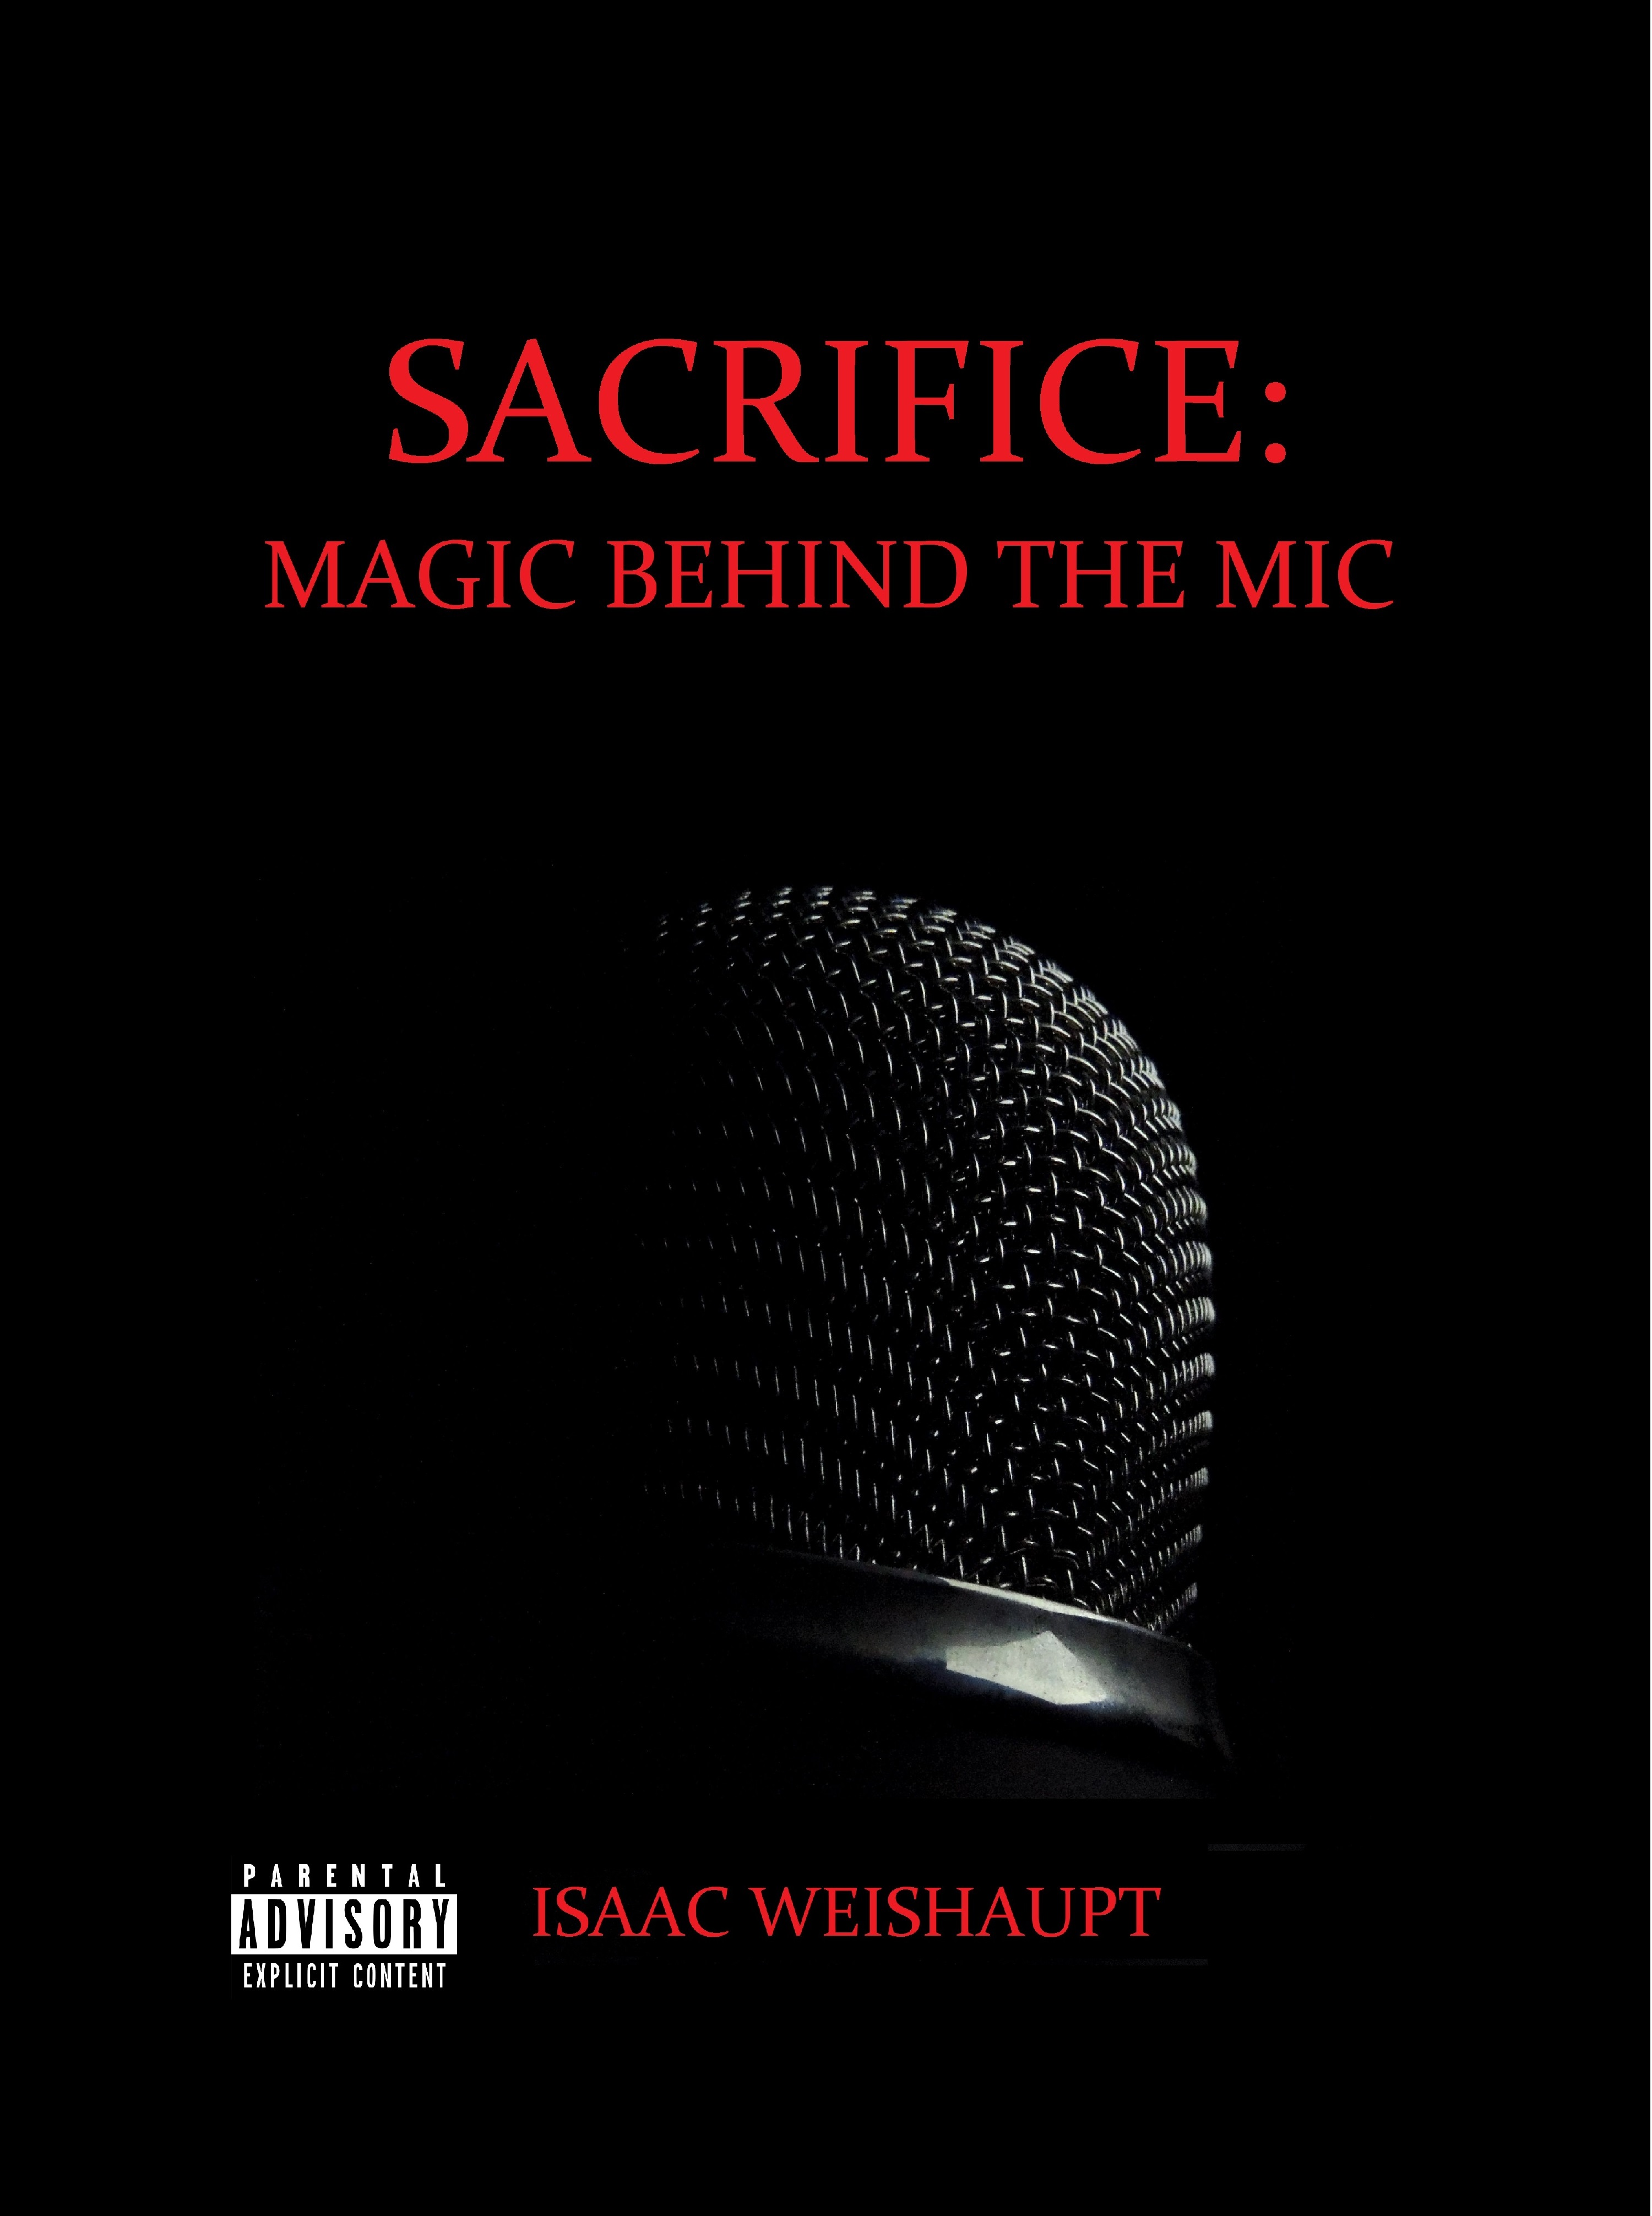 Sacrifice magic behind the mic the illuminati hip hop sacrifice magic behind the mic the illuminati hip hop illuminatiwatcher buycottarizona Image collections